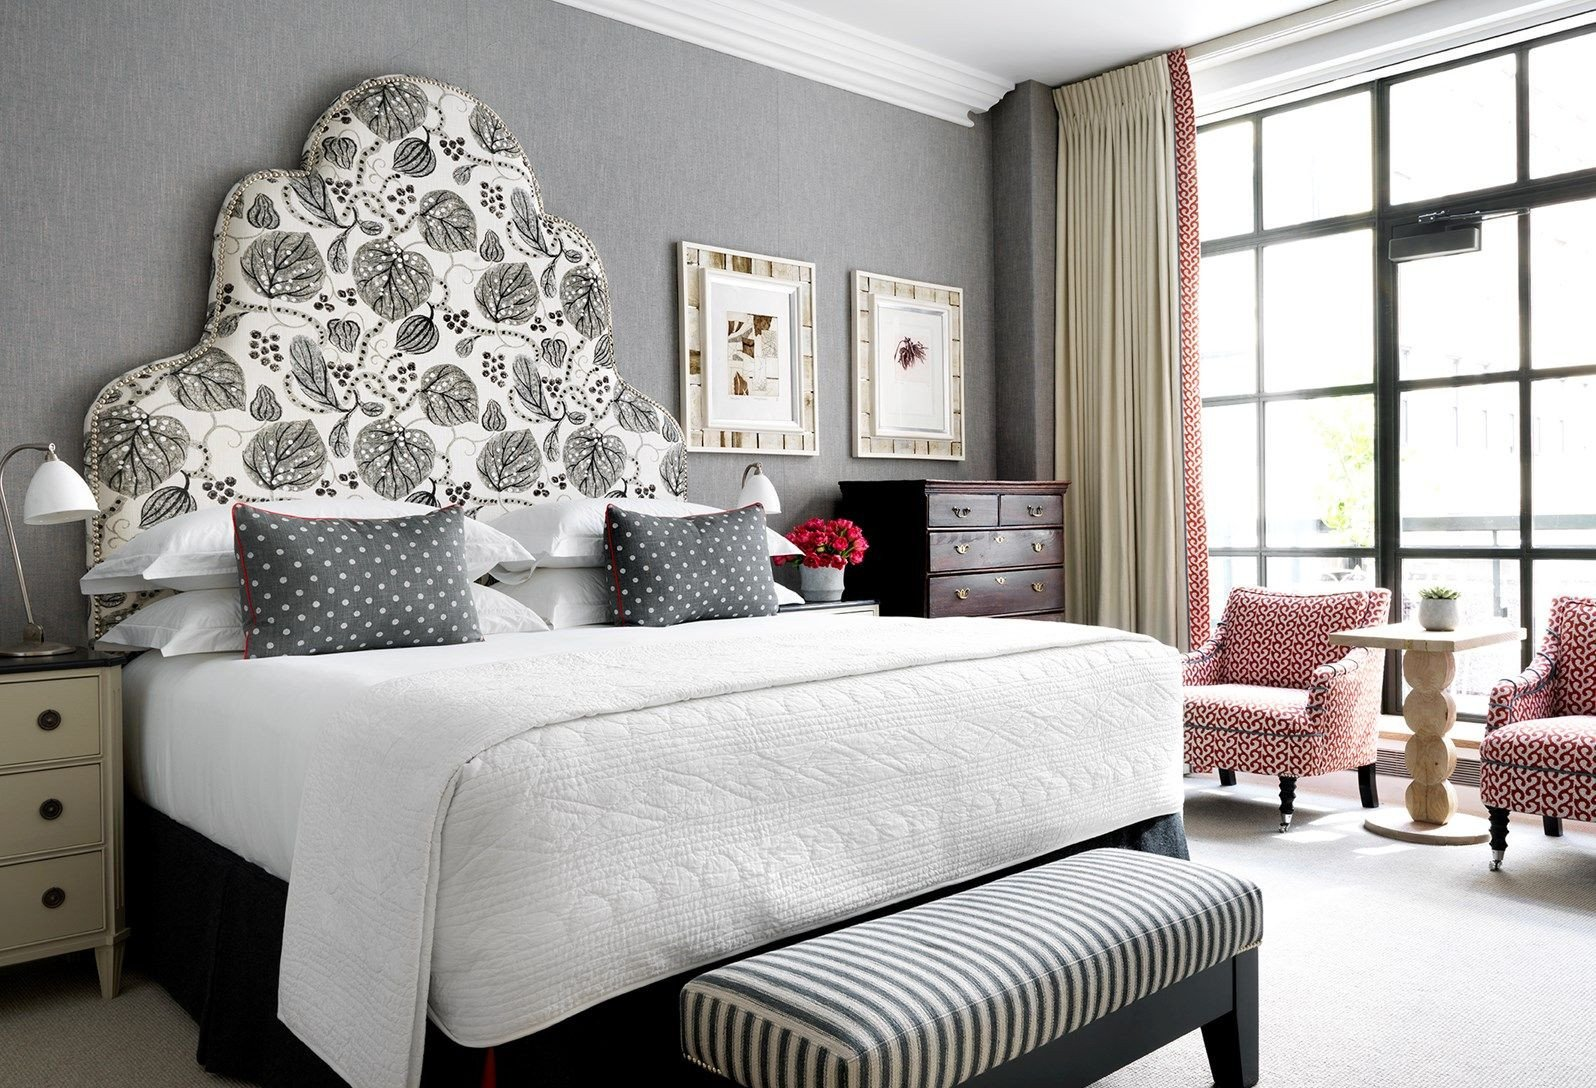 Red and Gray Bedroom Best Of A Bedroom In Grey tones with Red Details In Two Armchairs In